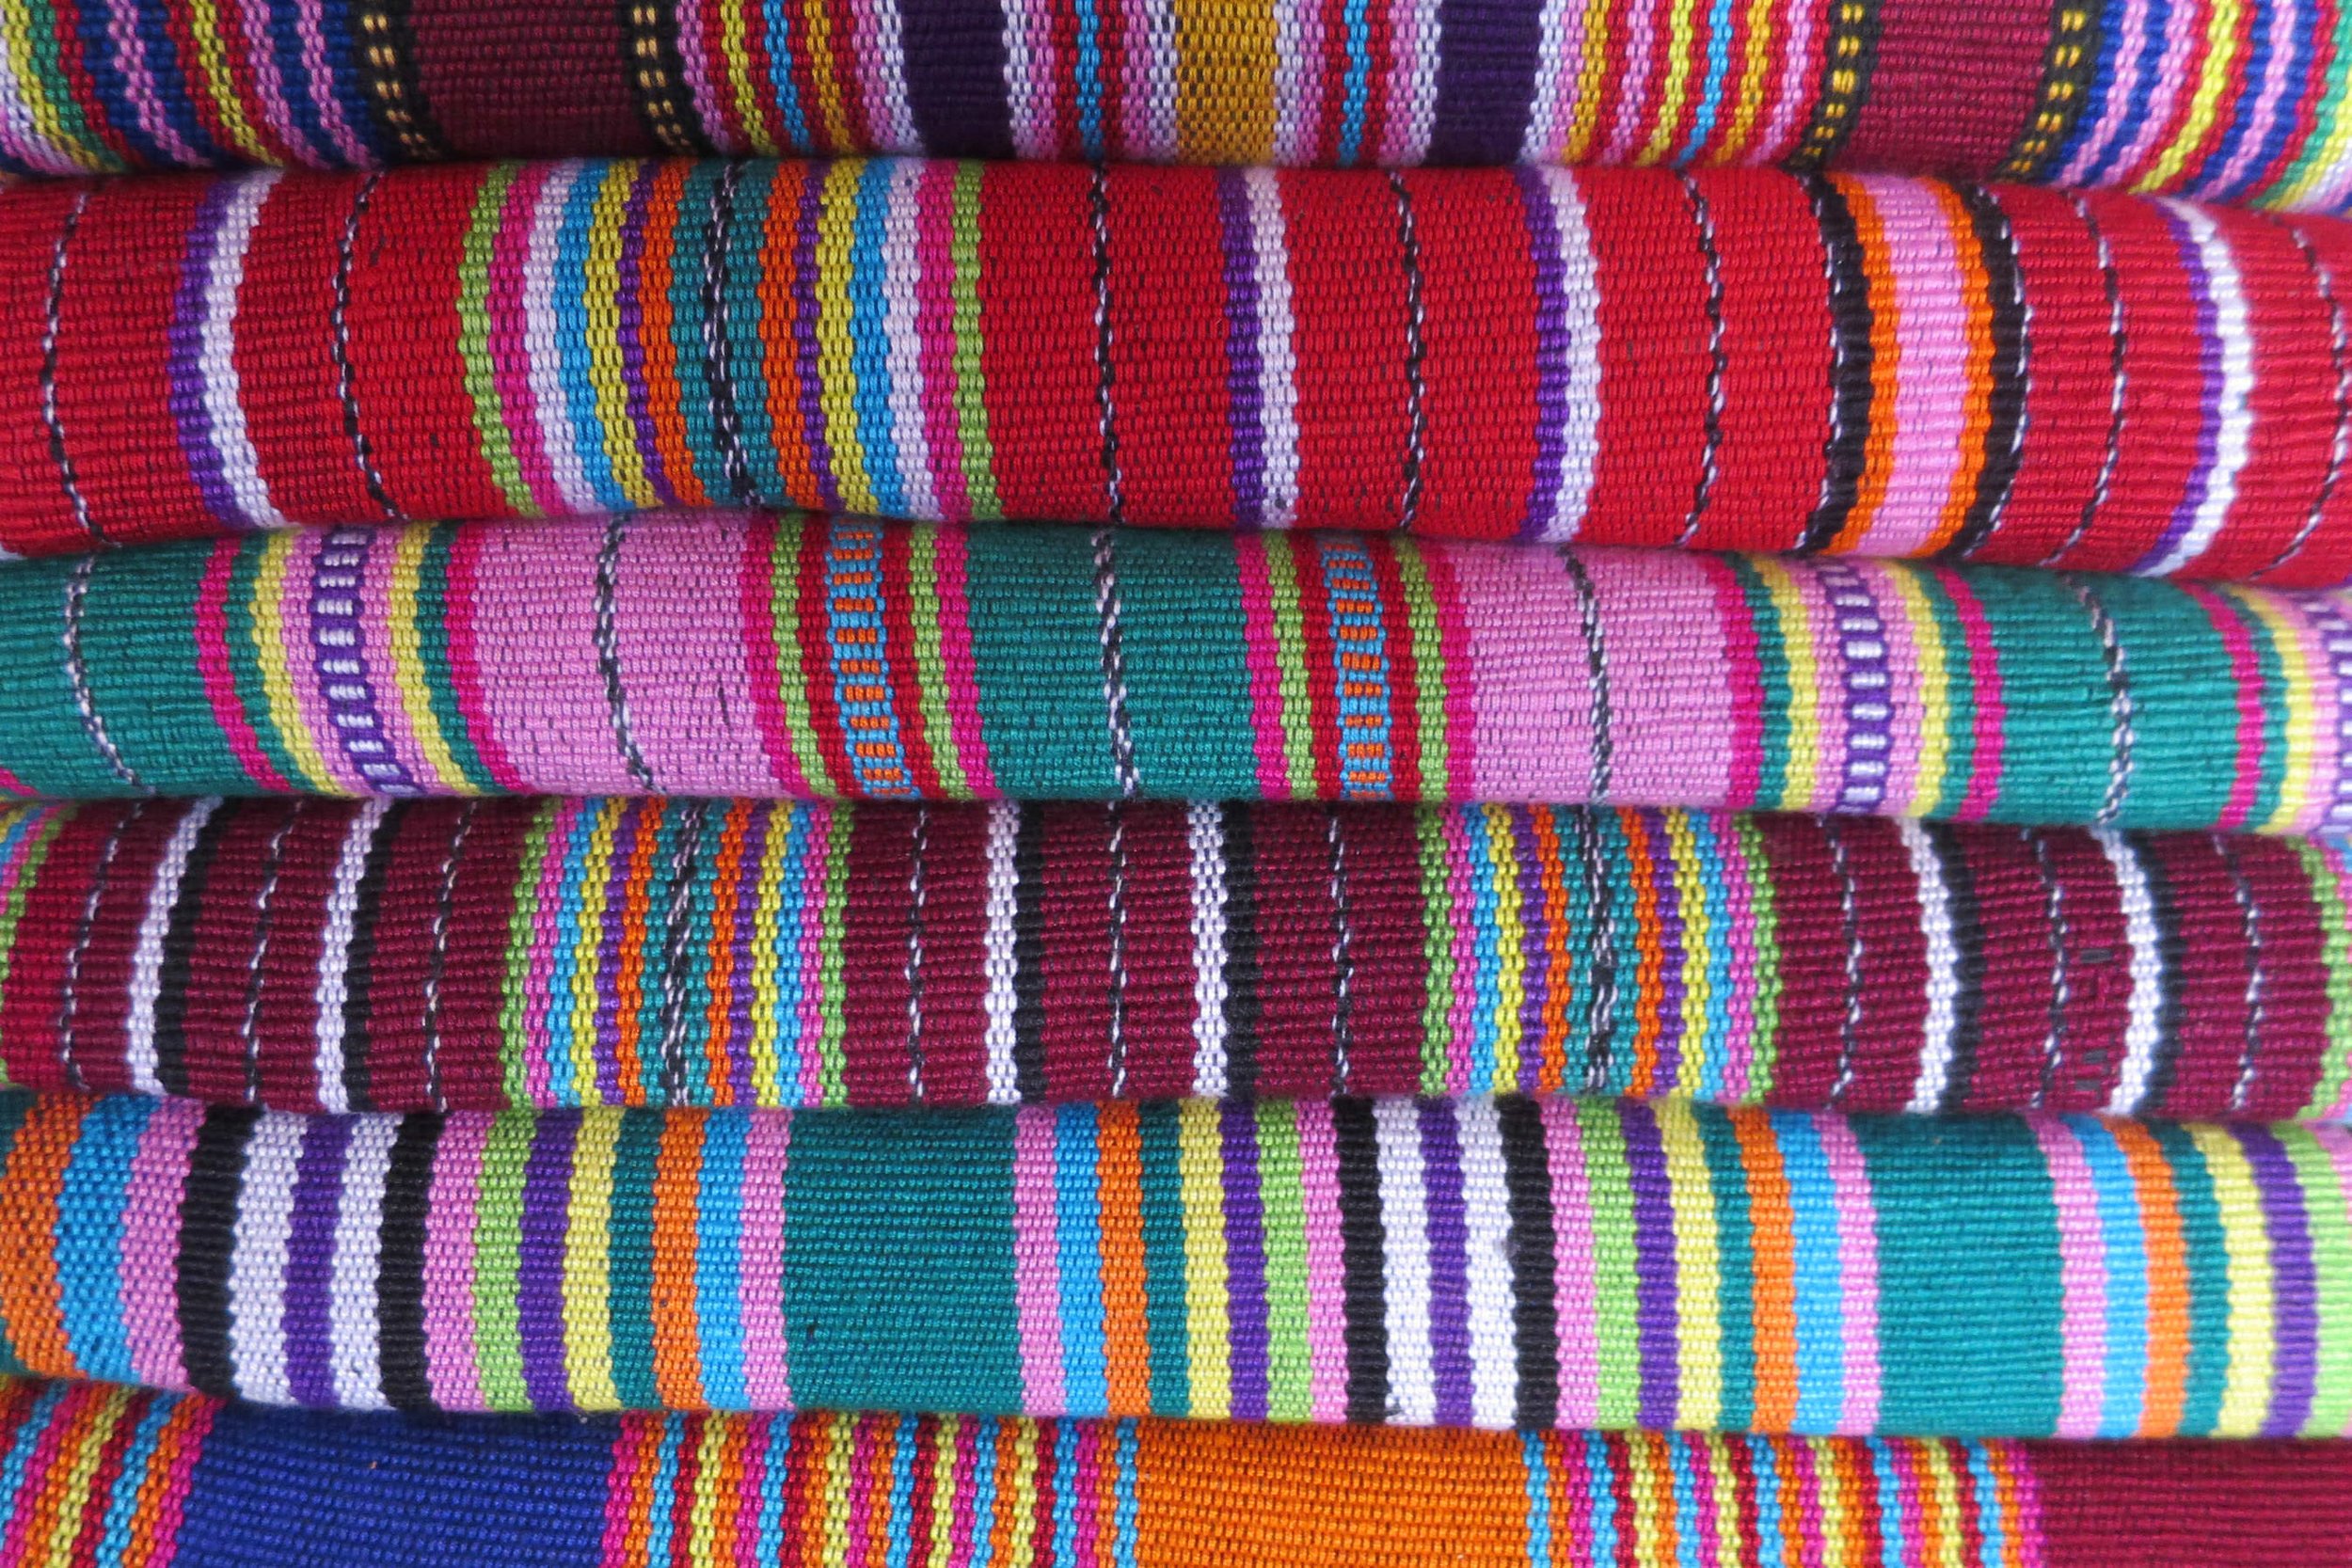 Invest in sustainably produced traditional textiles rather than holiday kitsch © Sarah Reid